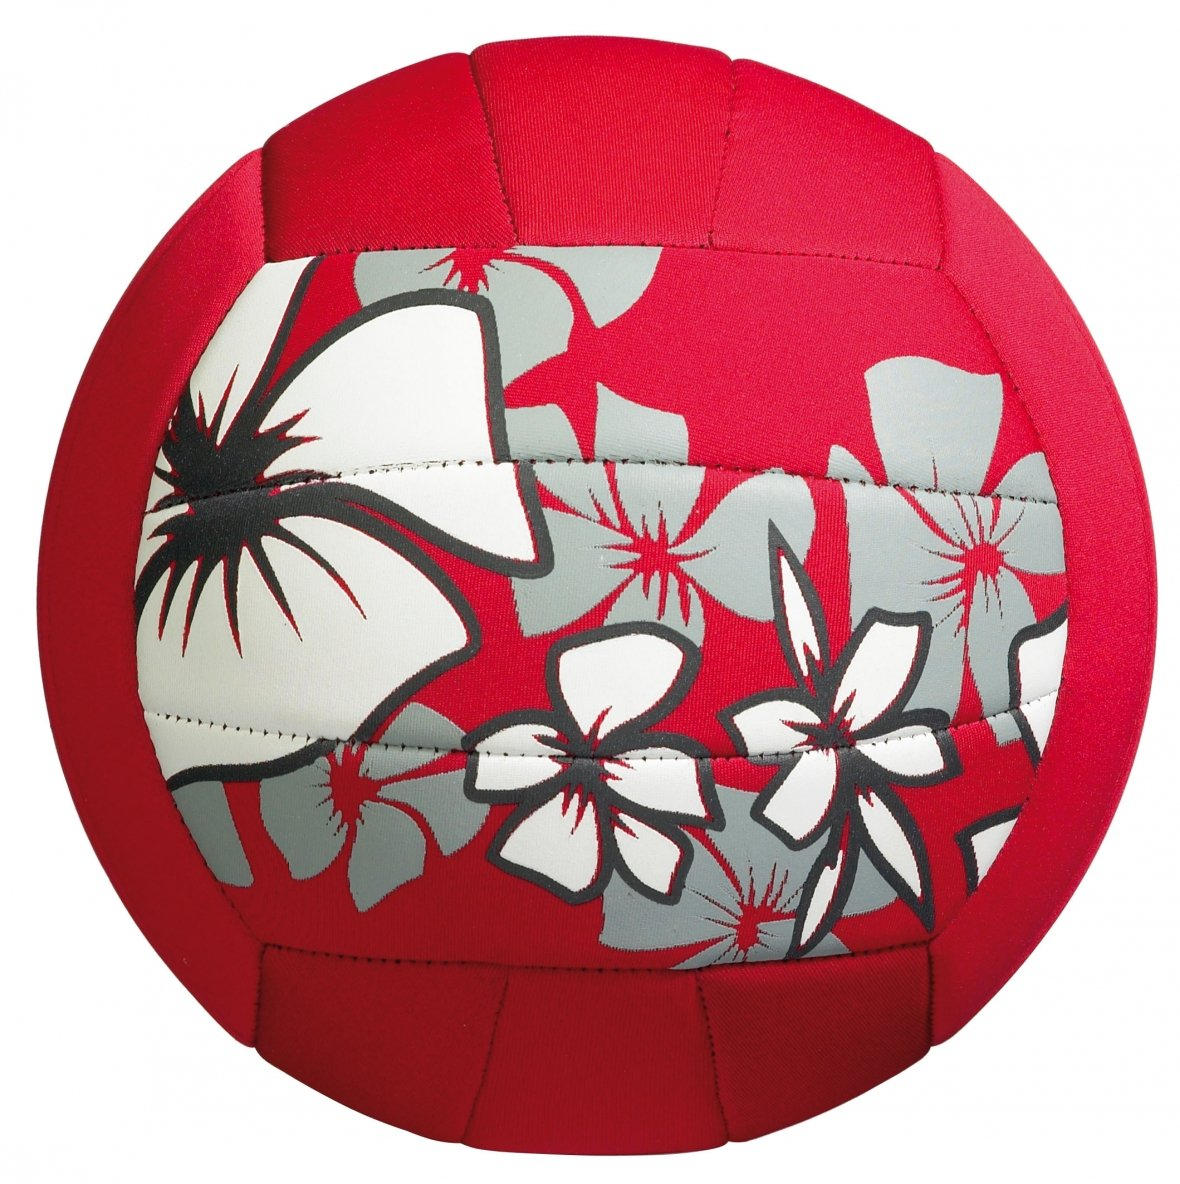 Large beach ball, red